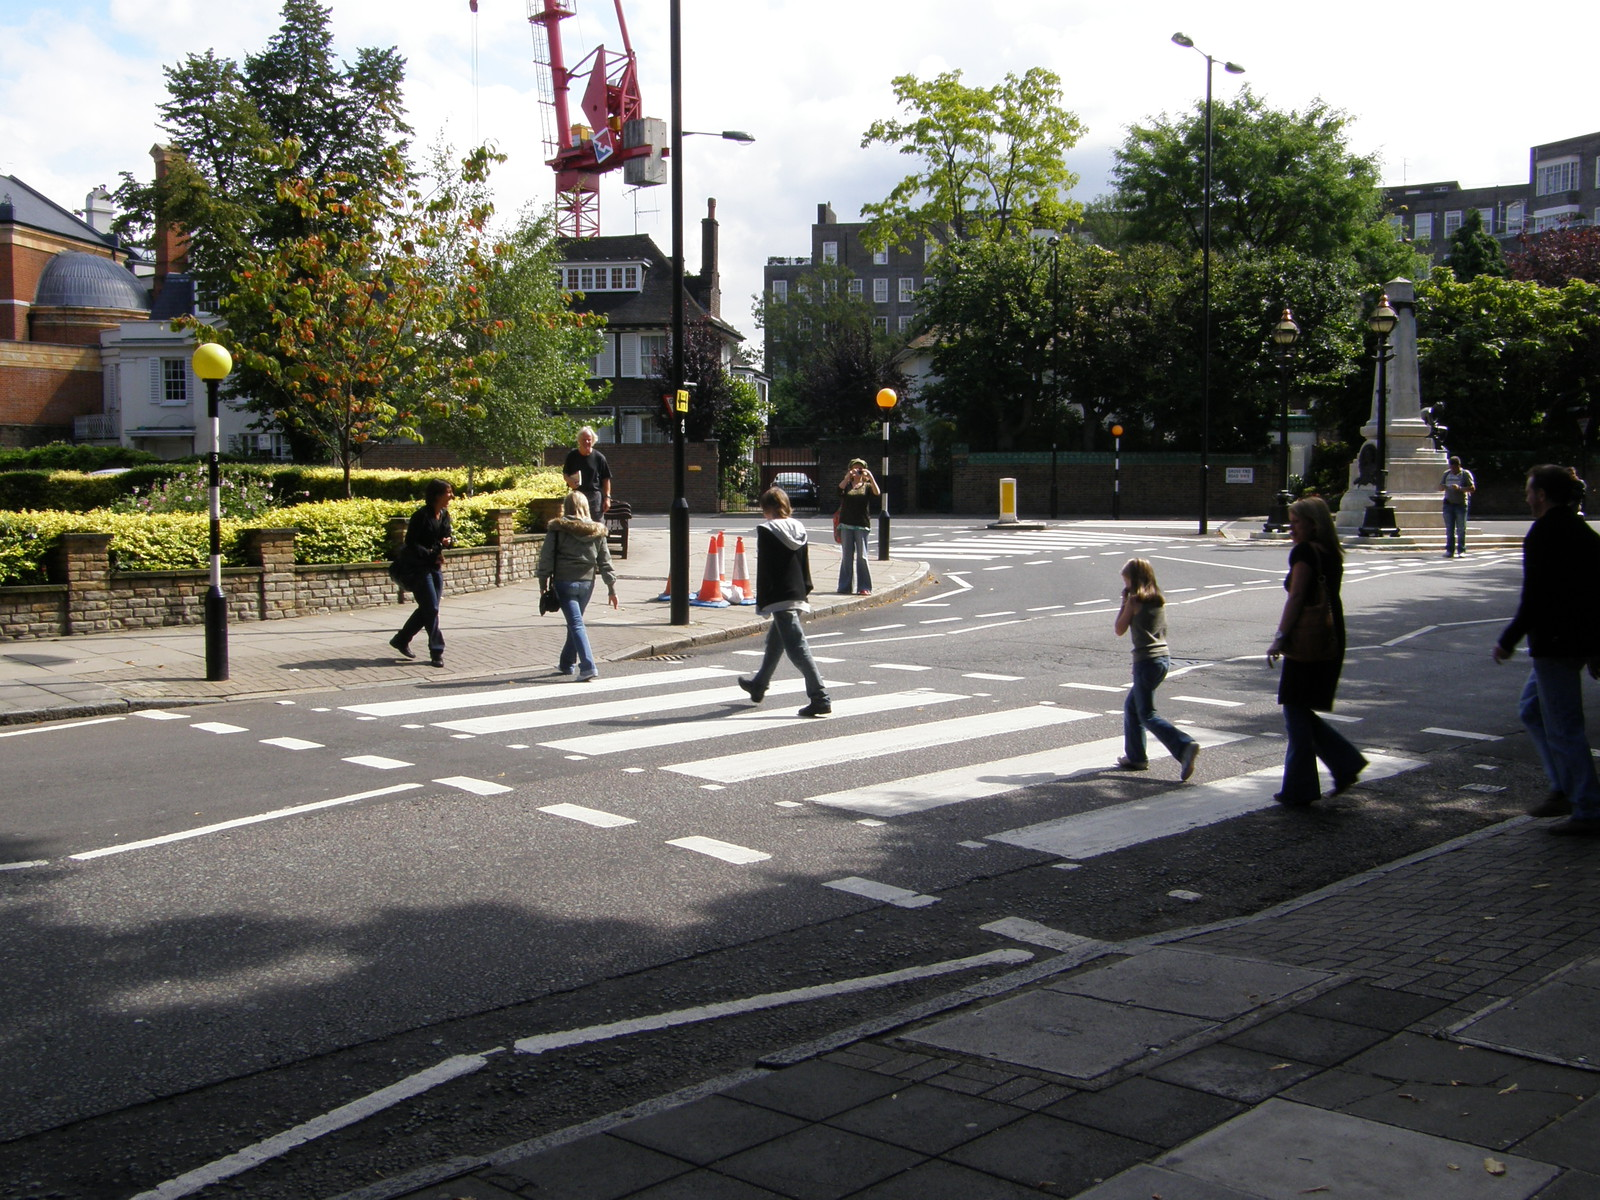 Tourists walking across the famous Abbey Road zebra crossing